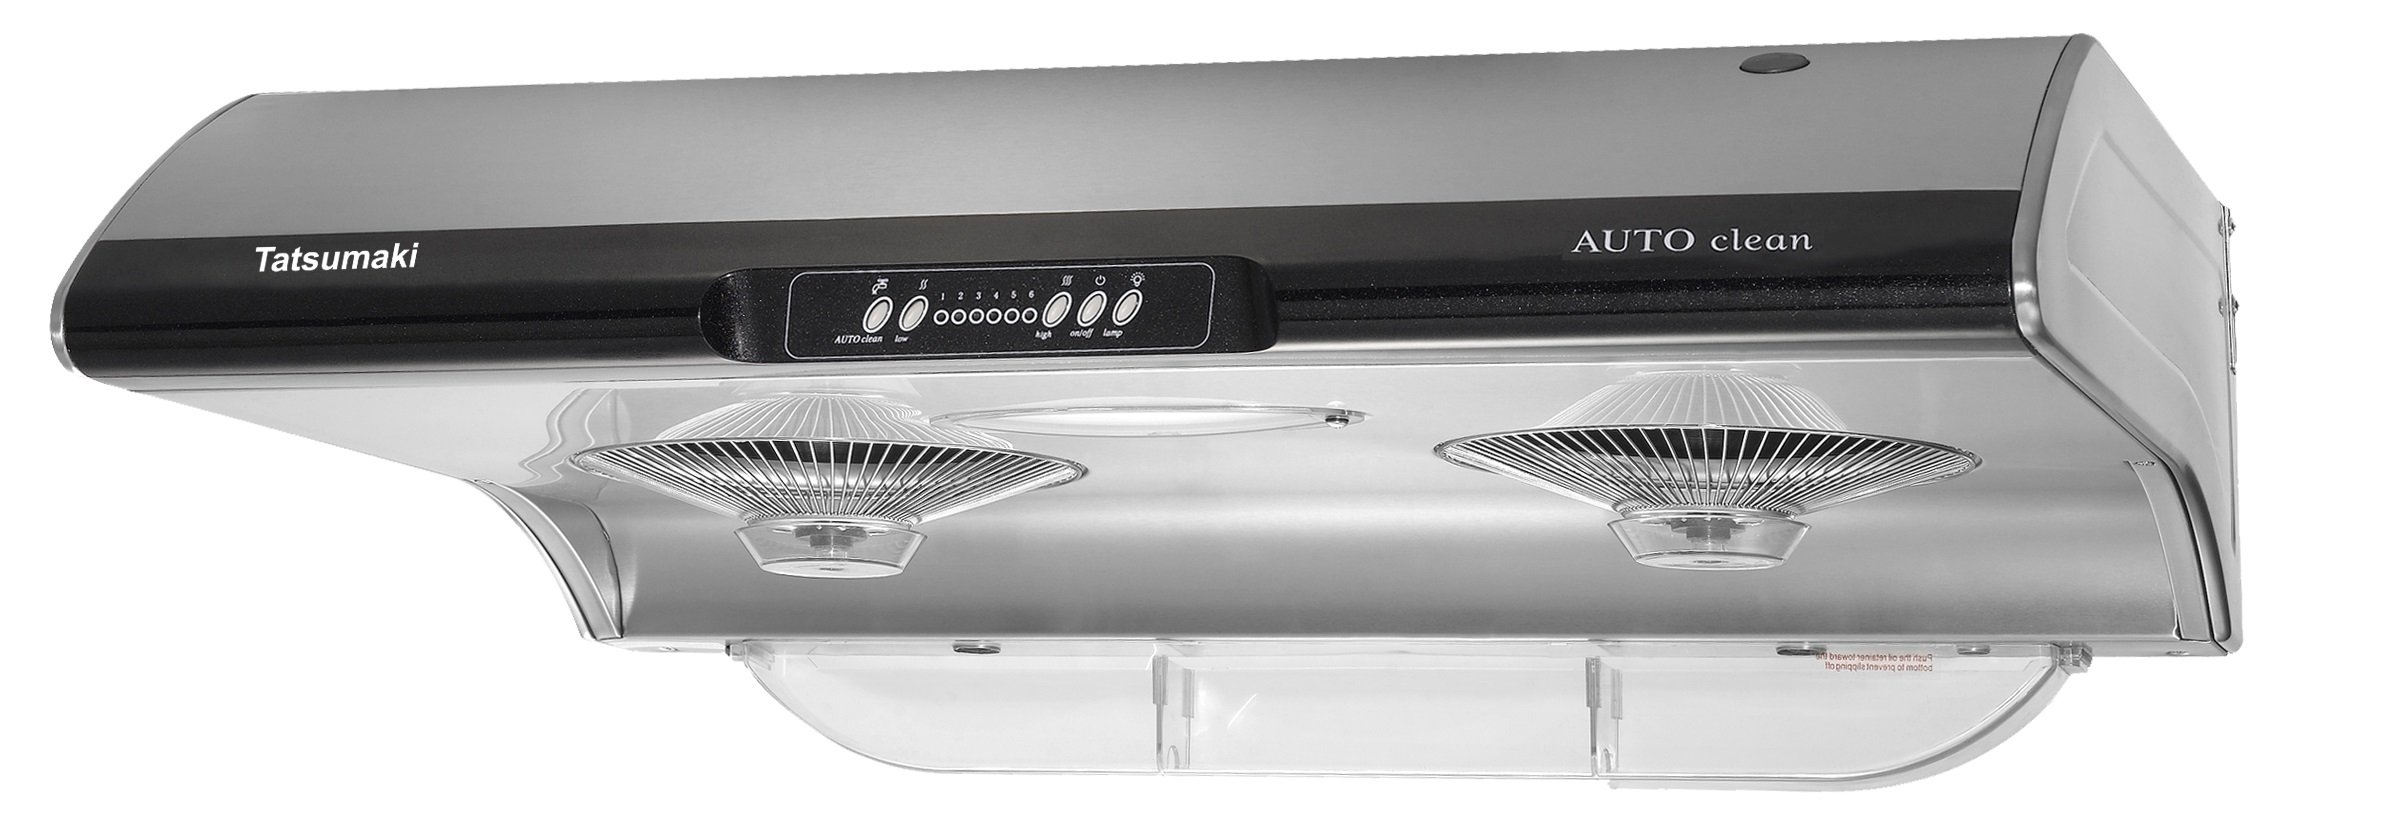 Tatsumaki 30'' TA-395 SELF CLEANING 6 SPEED SETTING Range Hood w/ 750 CFM